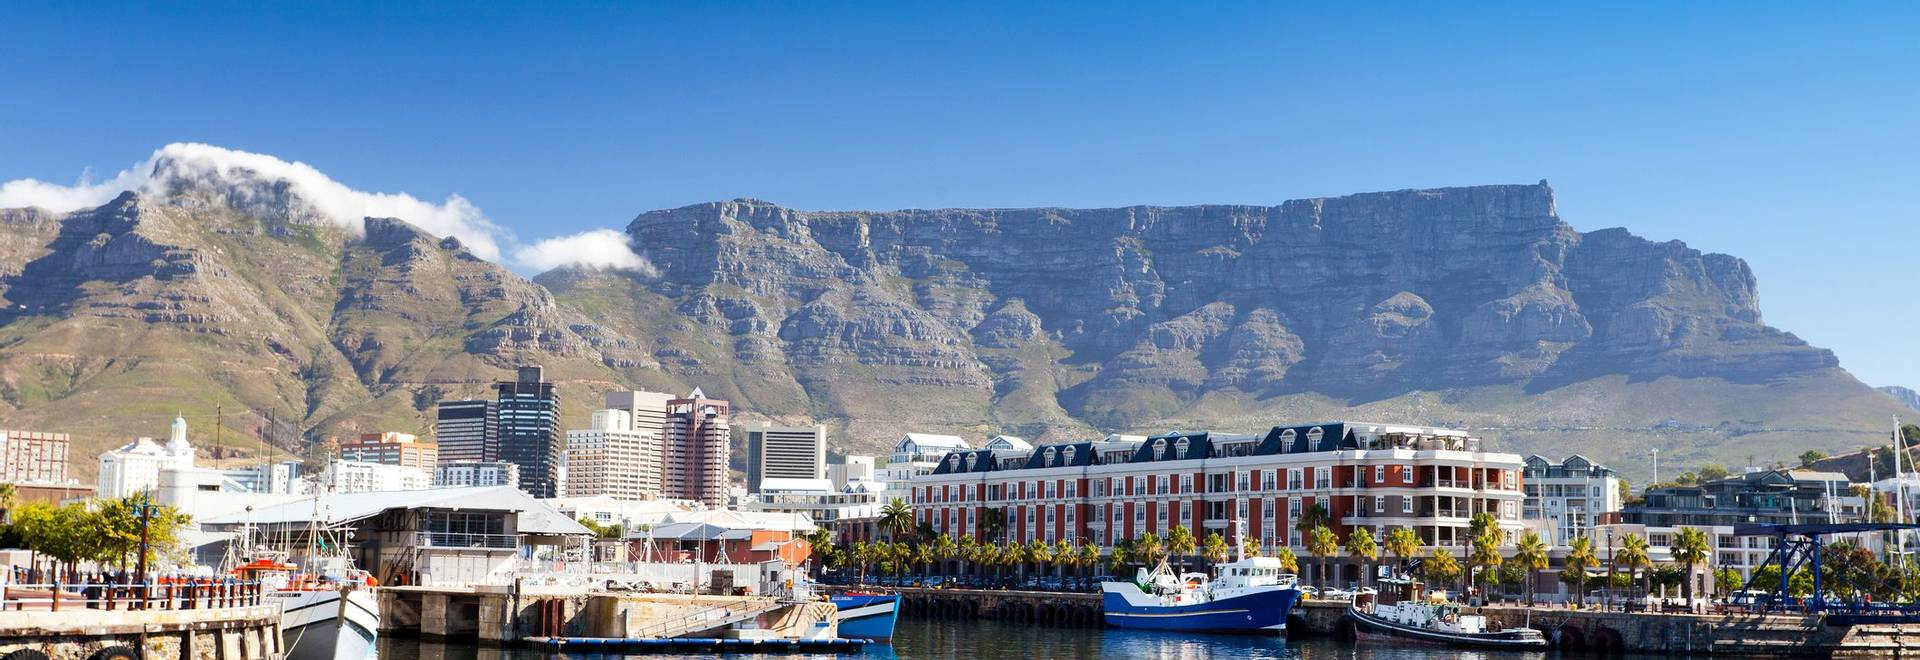 Cape Town's Waterfront & Table Mountain.jpg